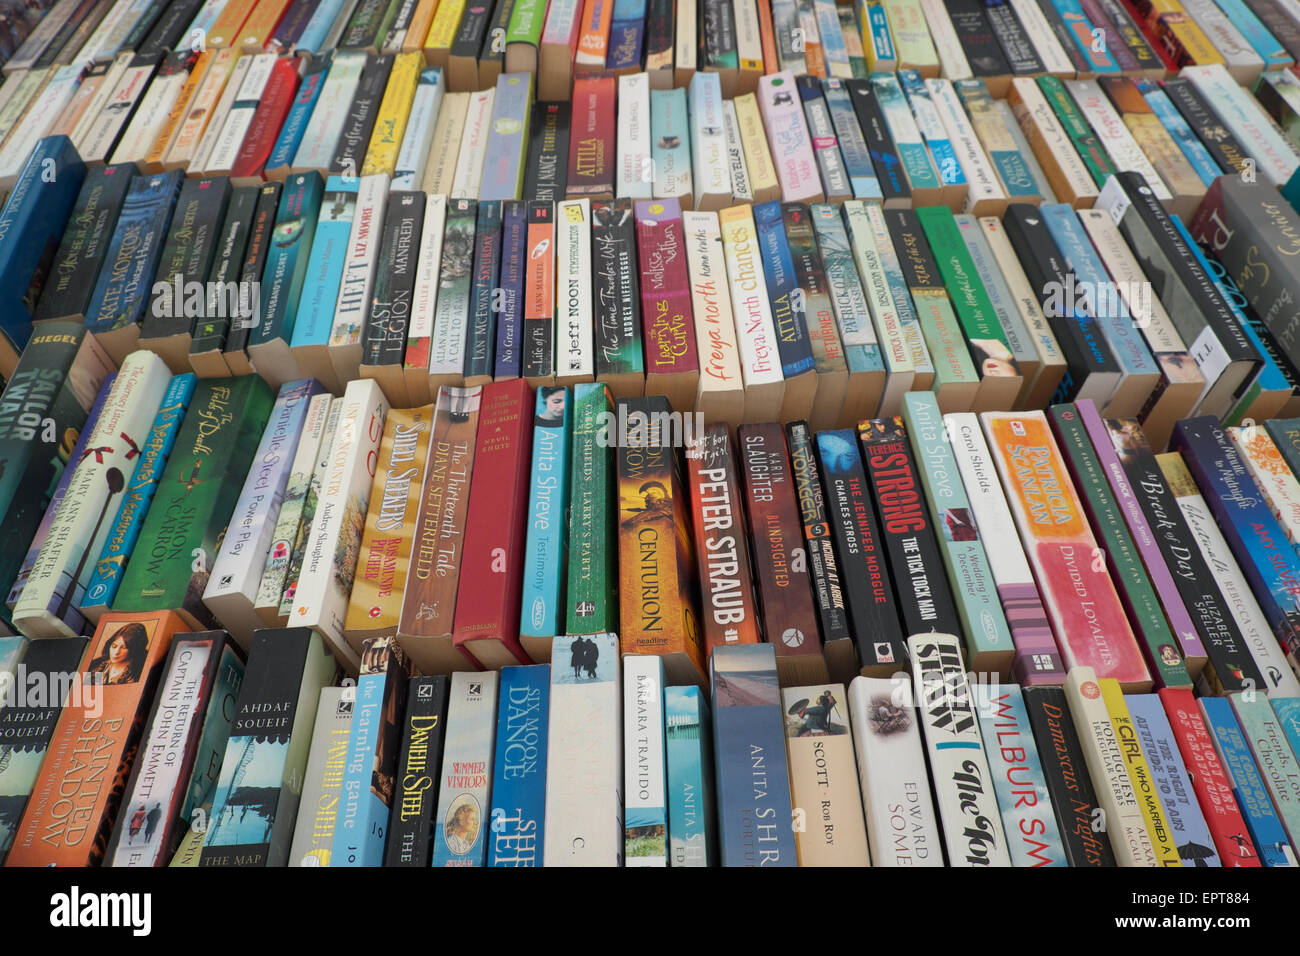 Secondhand paperback books for sale in Hay on Wye Powys Wales UK Stock Photo